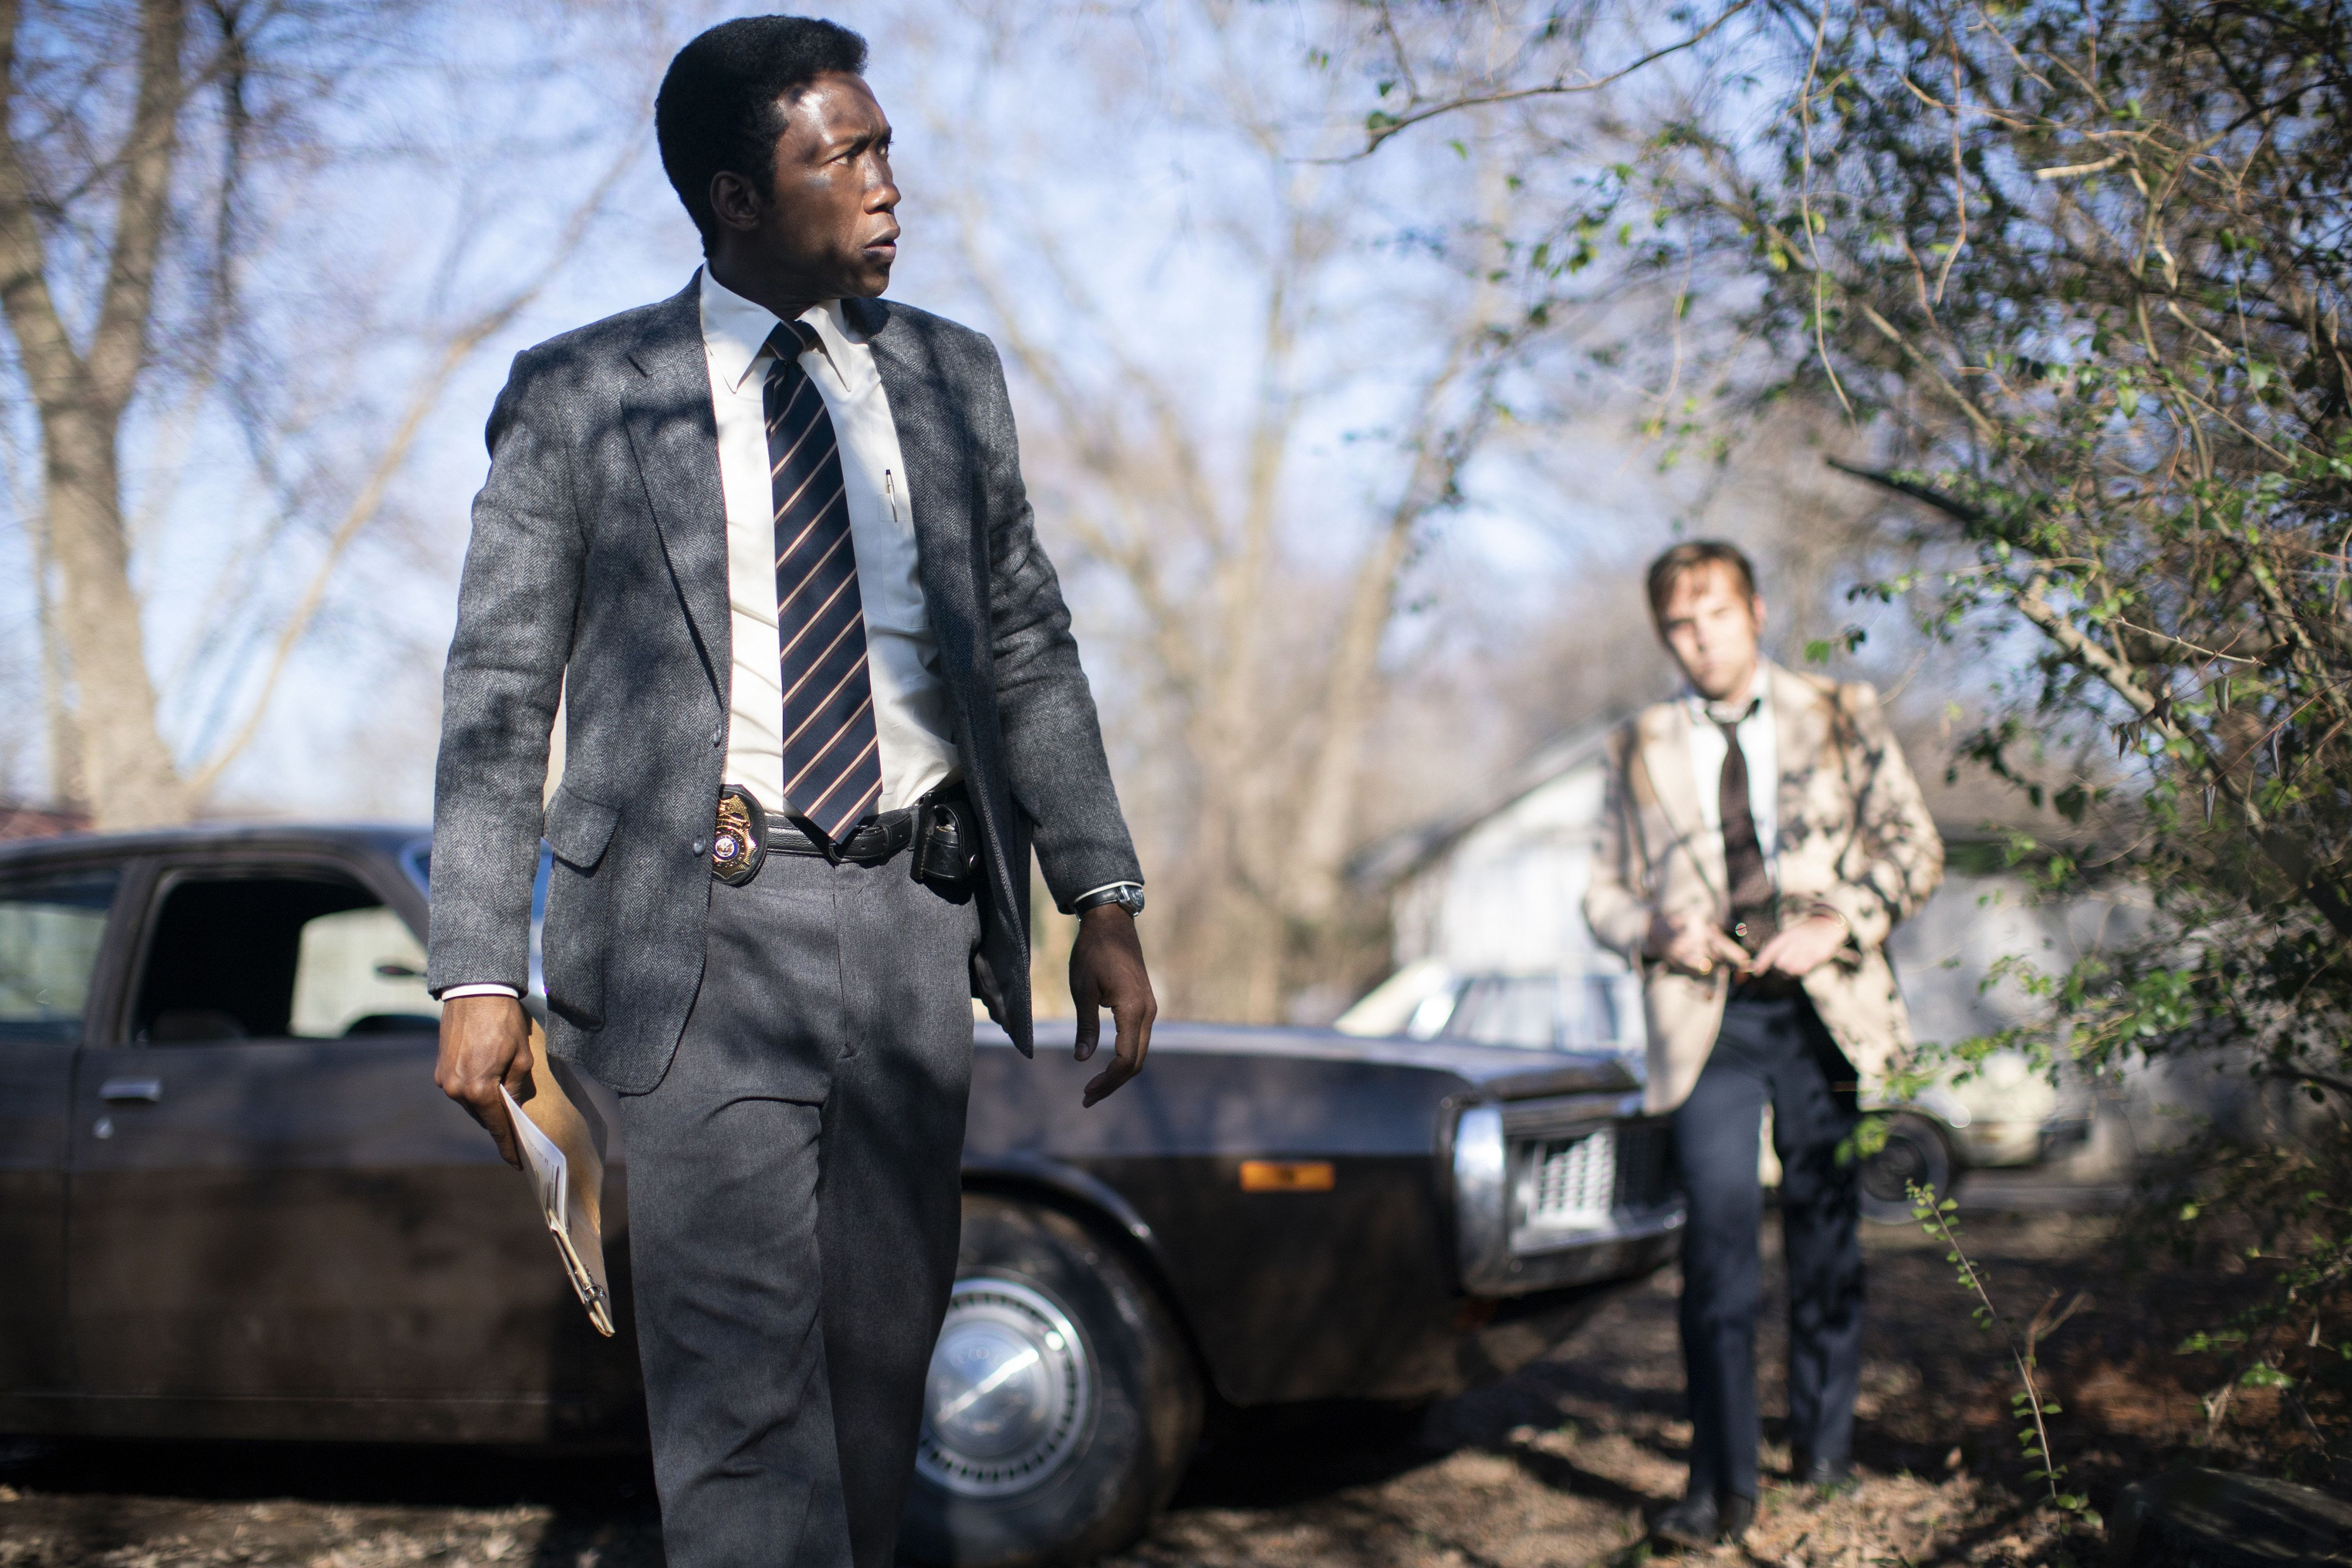 What To Expect From 'True Detective' Season 3, Another Crime Show Set In The